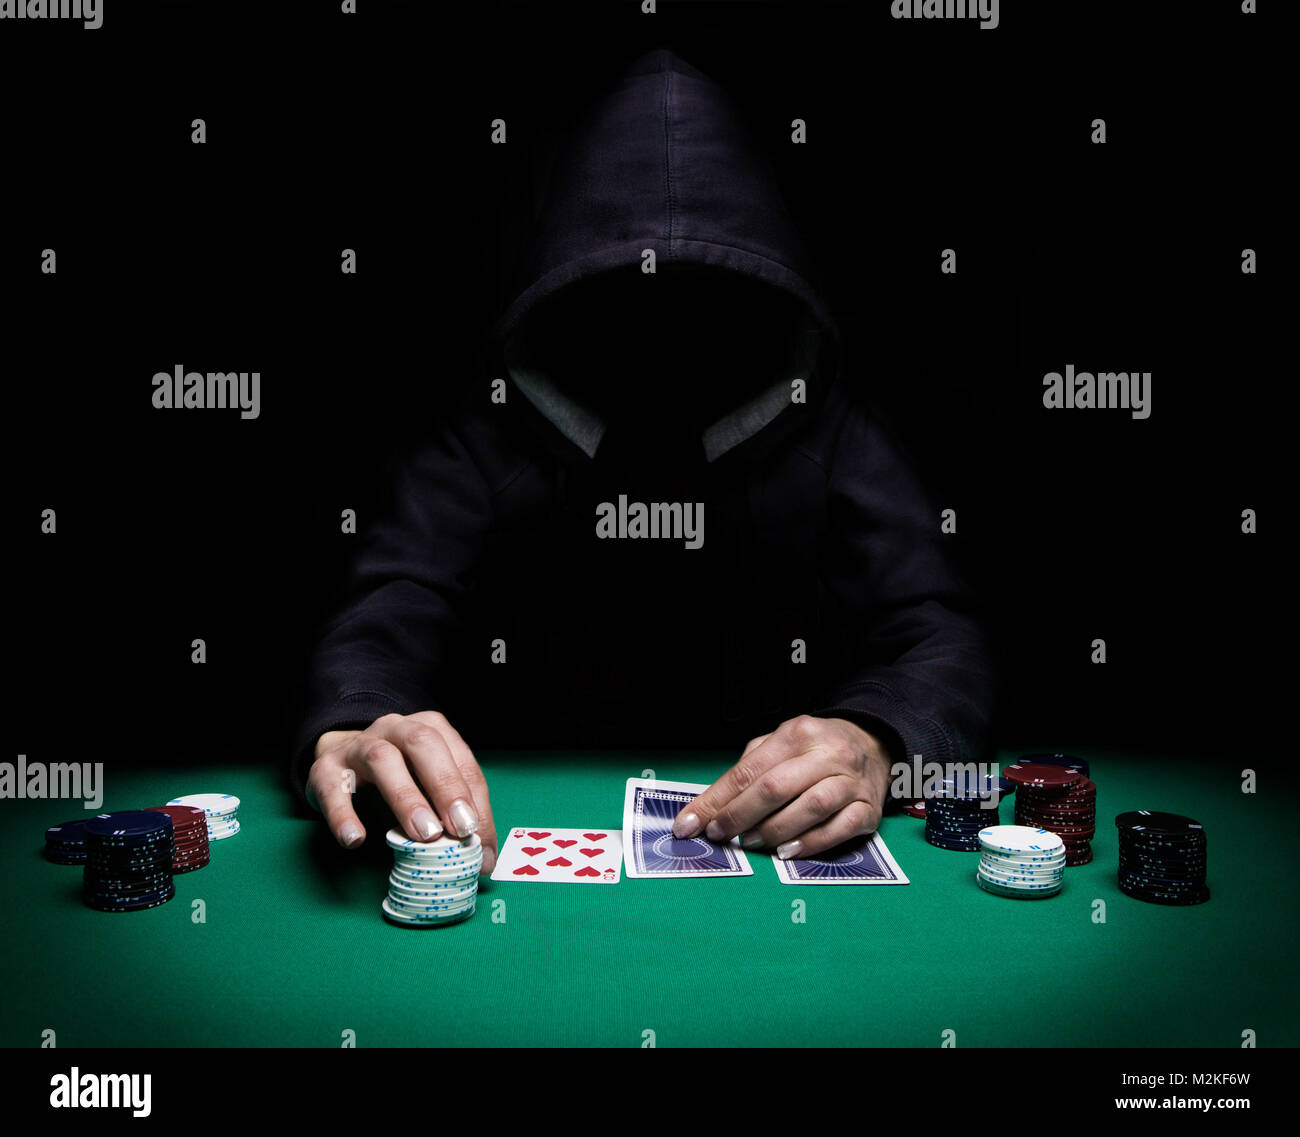 Unknown woman playing poker on green table with chips all around, front view - Stock Image